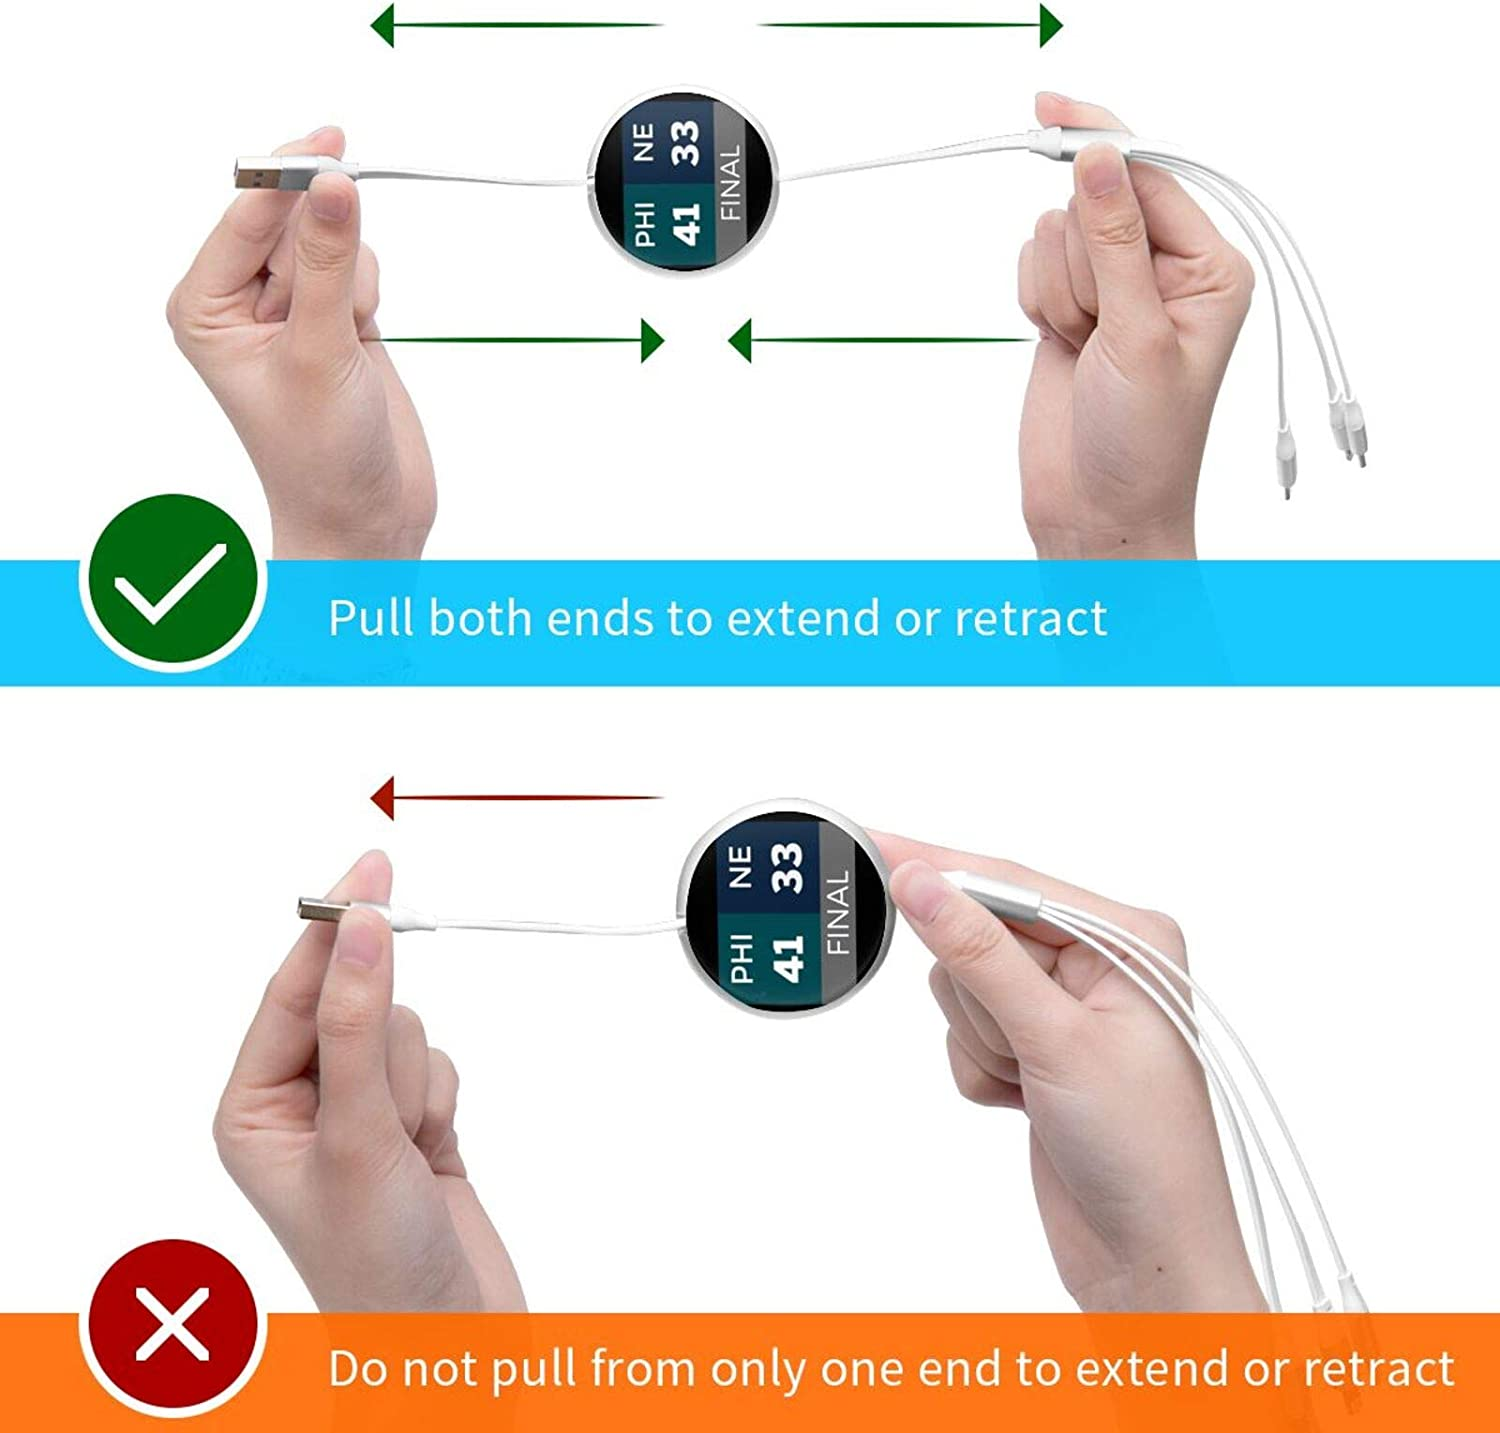 Multi Charging Cable Portable 3 in 1 Phi 41 Ne 33 USB Cable USB Power Cords for Cell Phone Tablets and More Devices Charging